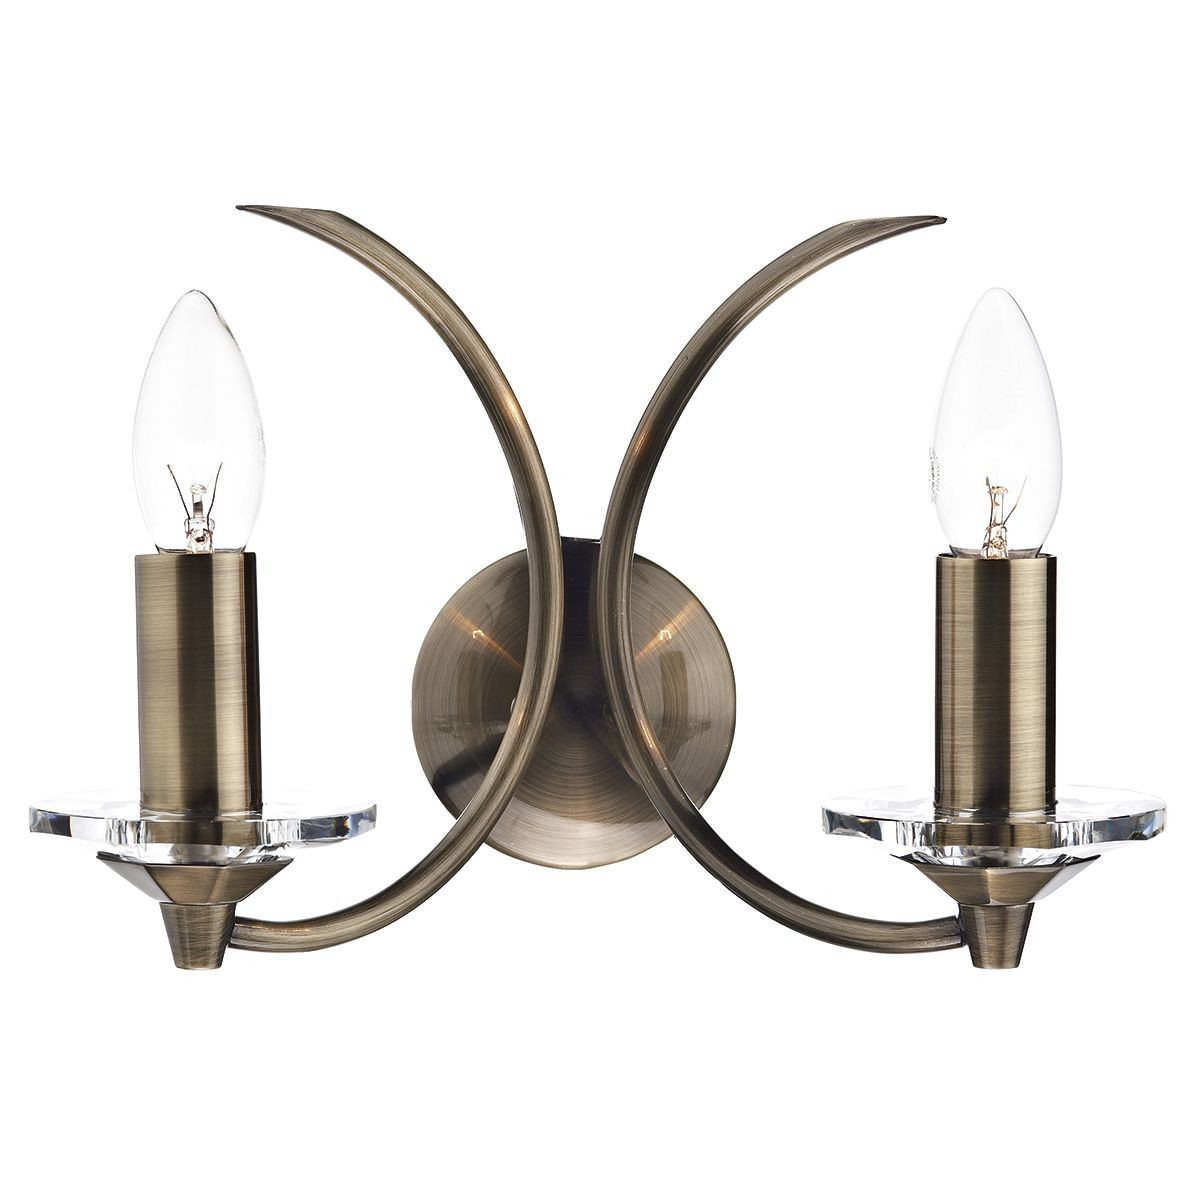 Vintage Wall Lights Double : Medusa Double Wall Light - Antique Brass